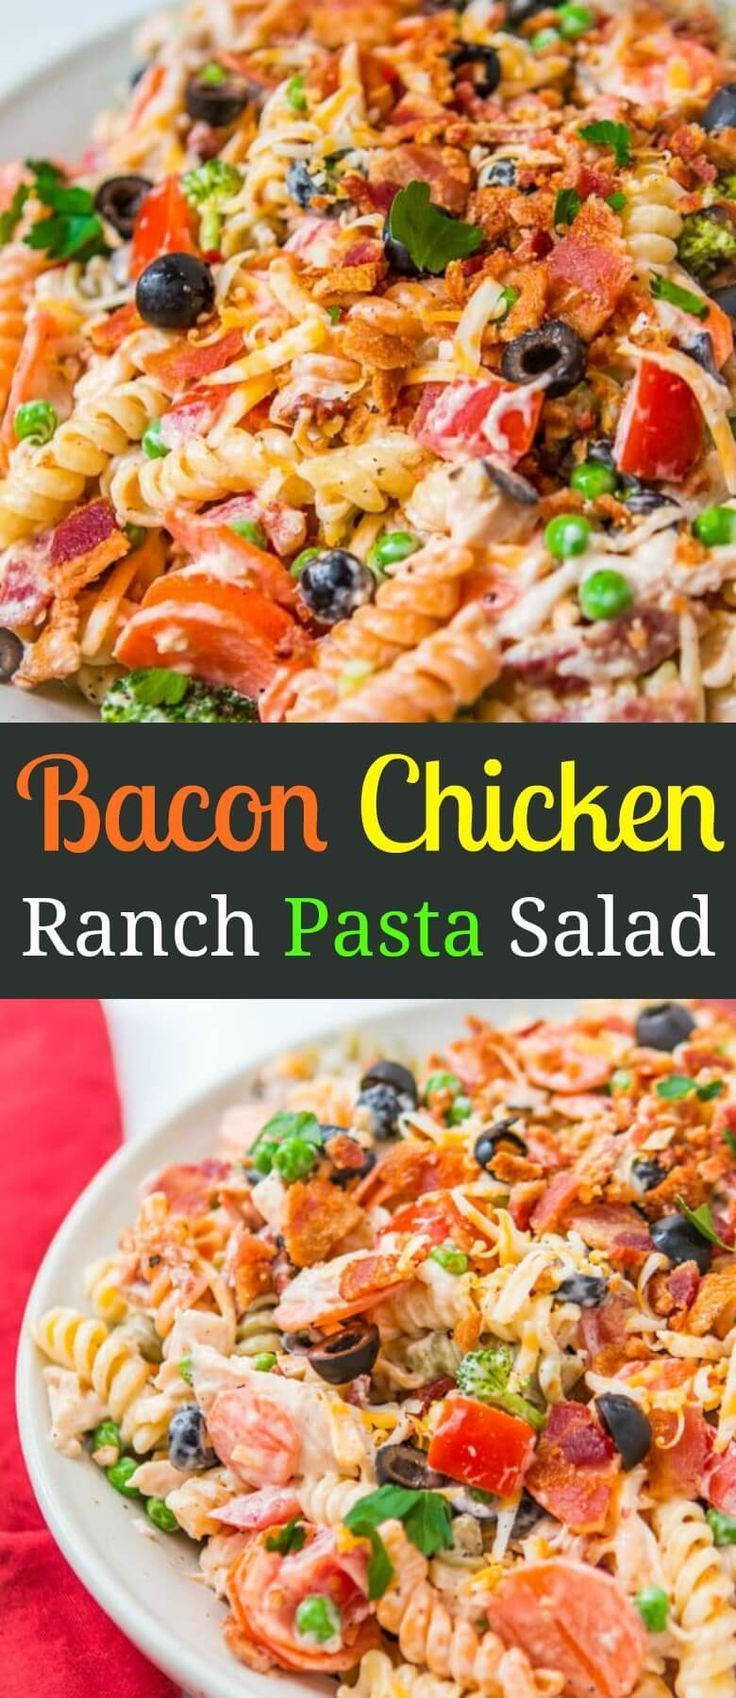 Looking for an easy pasta salad recipe for a bbq? This easy bacon chicken ranch pasta salad is seriously one of my favorite side dish recipes for potlucks! via @ohsweetbasil